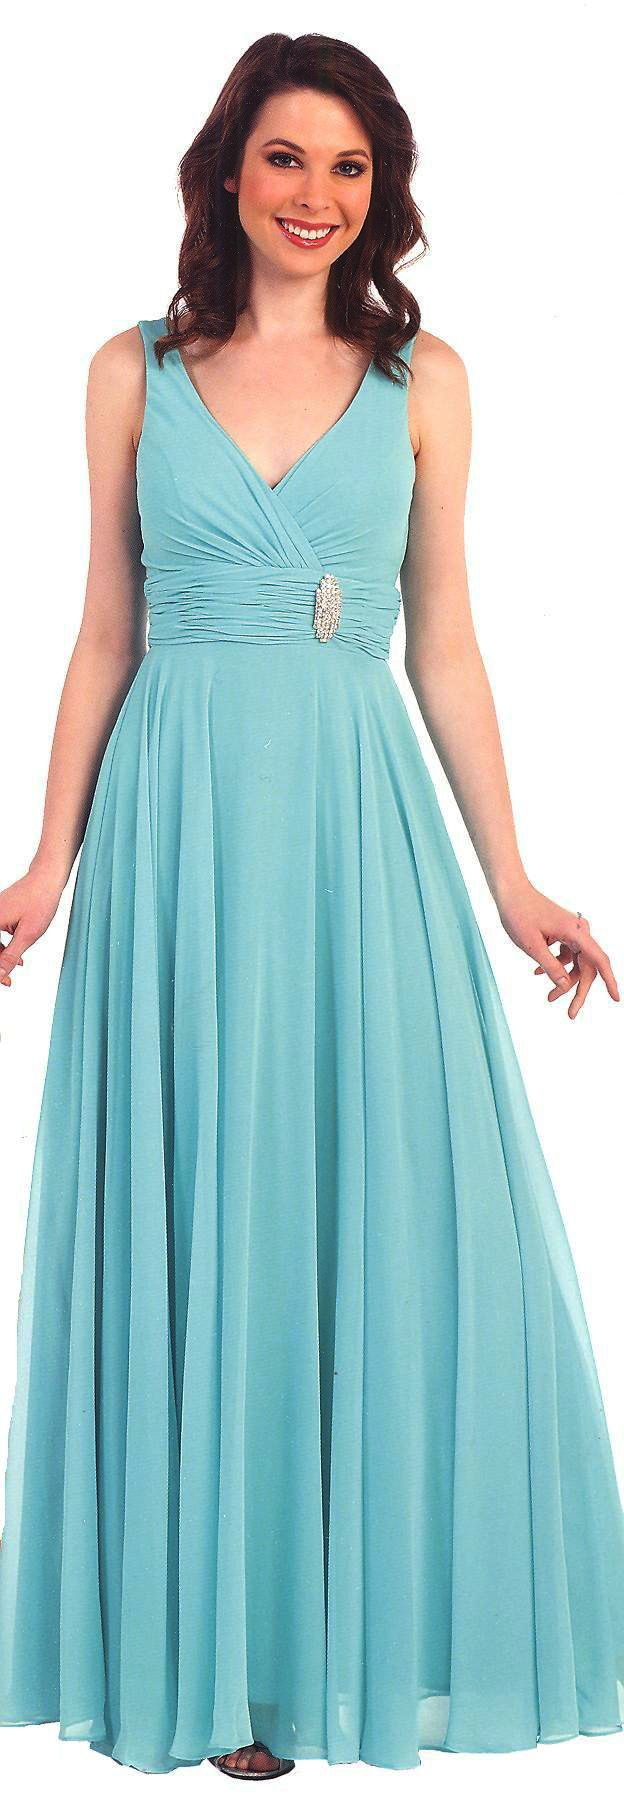 Bridesmaid Dresses Evening Dresses under $100<BR>1376<BR>Long V neckline gown, ruched bodice and waist band with side beaded accent(sizes to 4X)